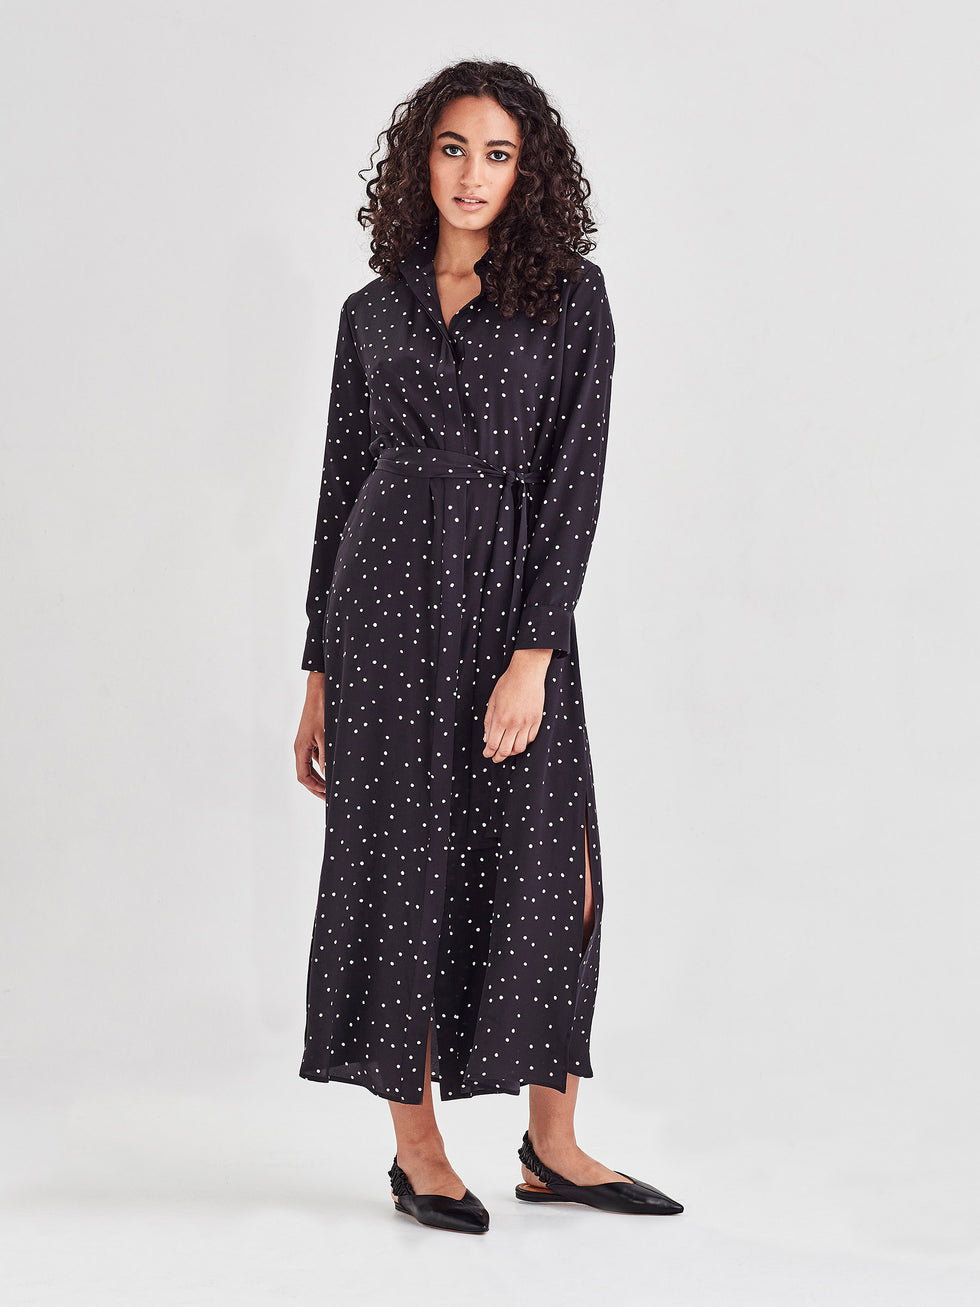 Lucia Dress (Spotty Viscose Silk) Black Dot